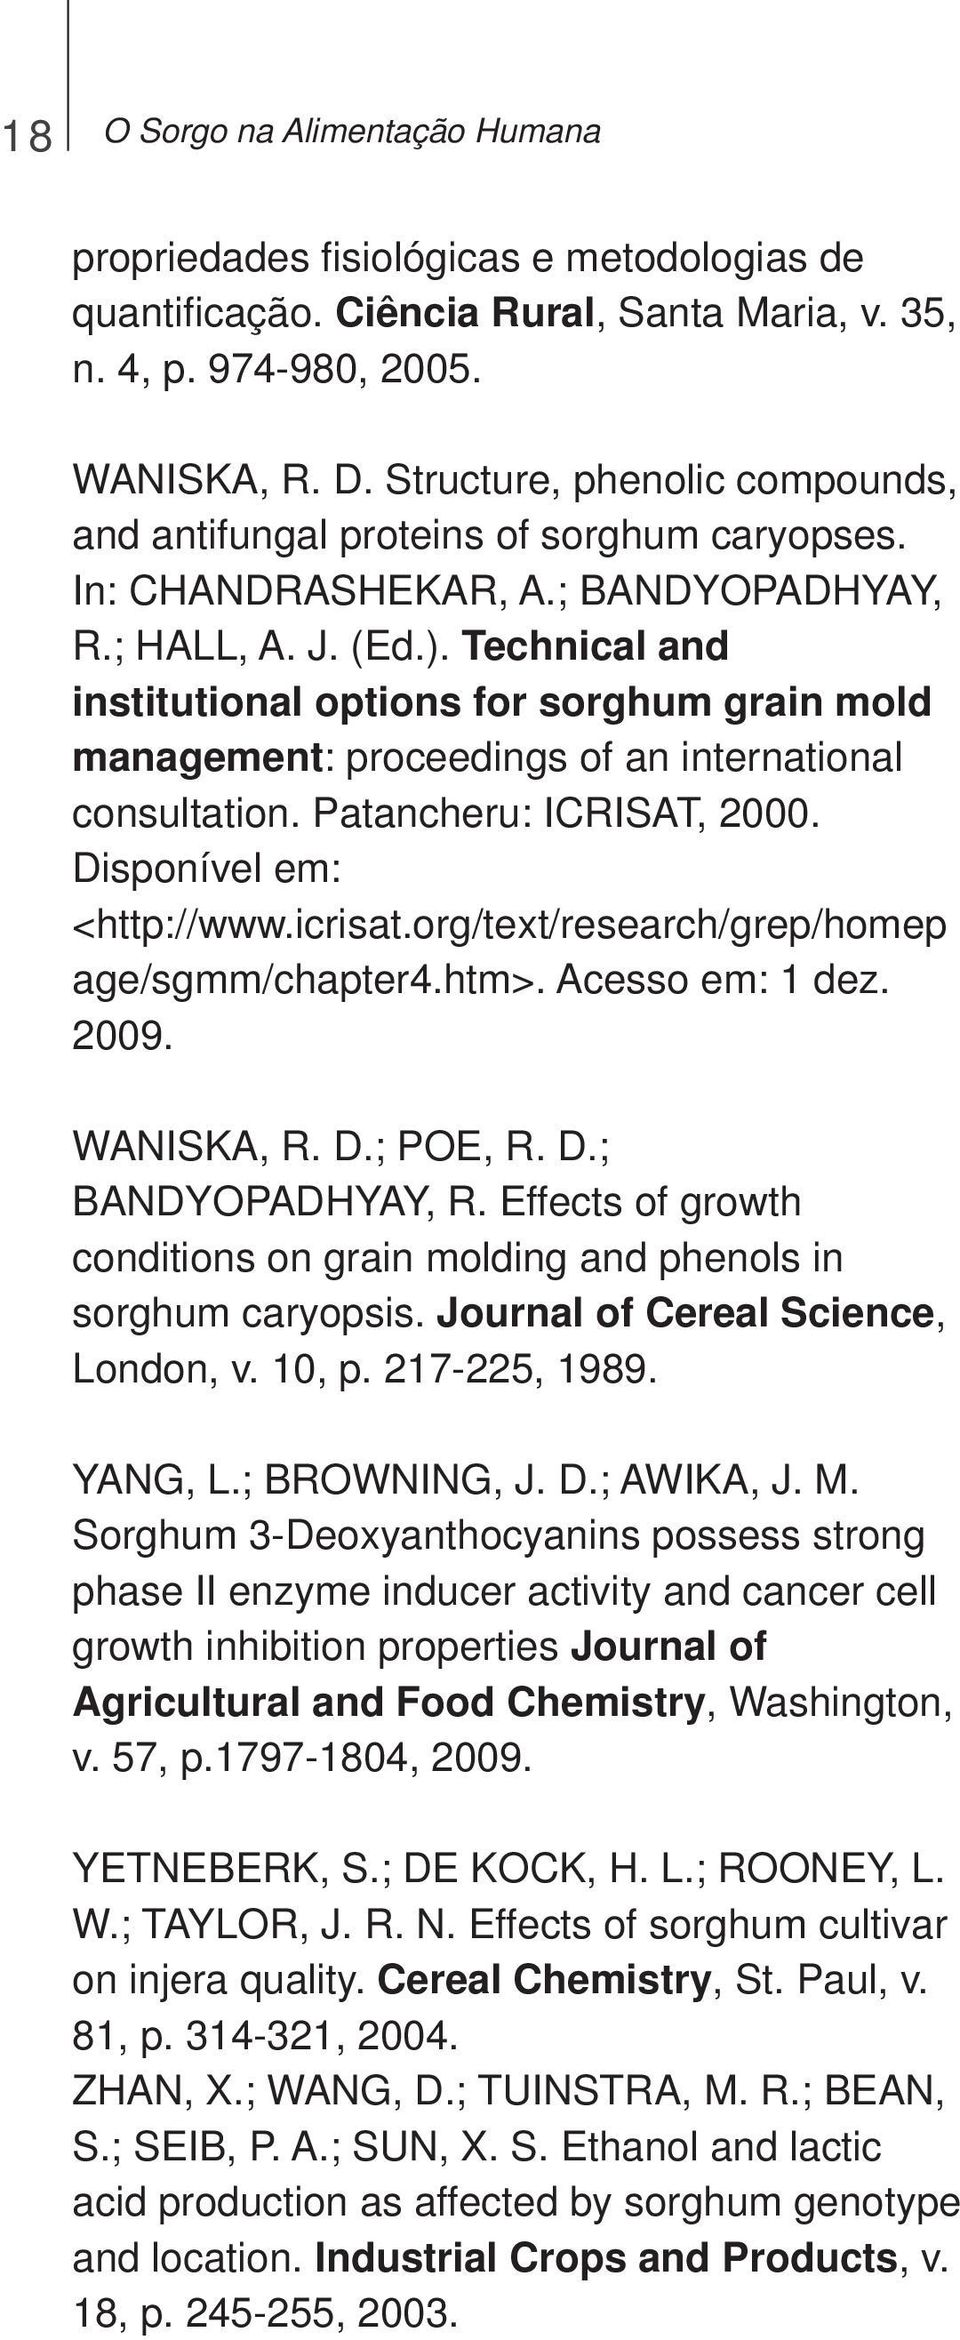 Technical and institutional options for sorghum grain mold management: proceedings of an international consultation. Patancheru: ICRISAT, 2000. Disponível em: <http://www.icrisat.